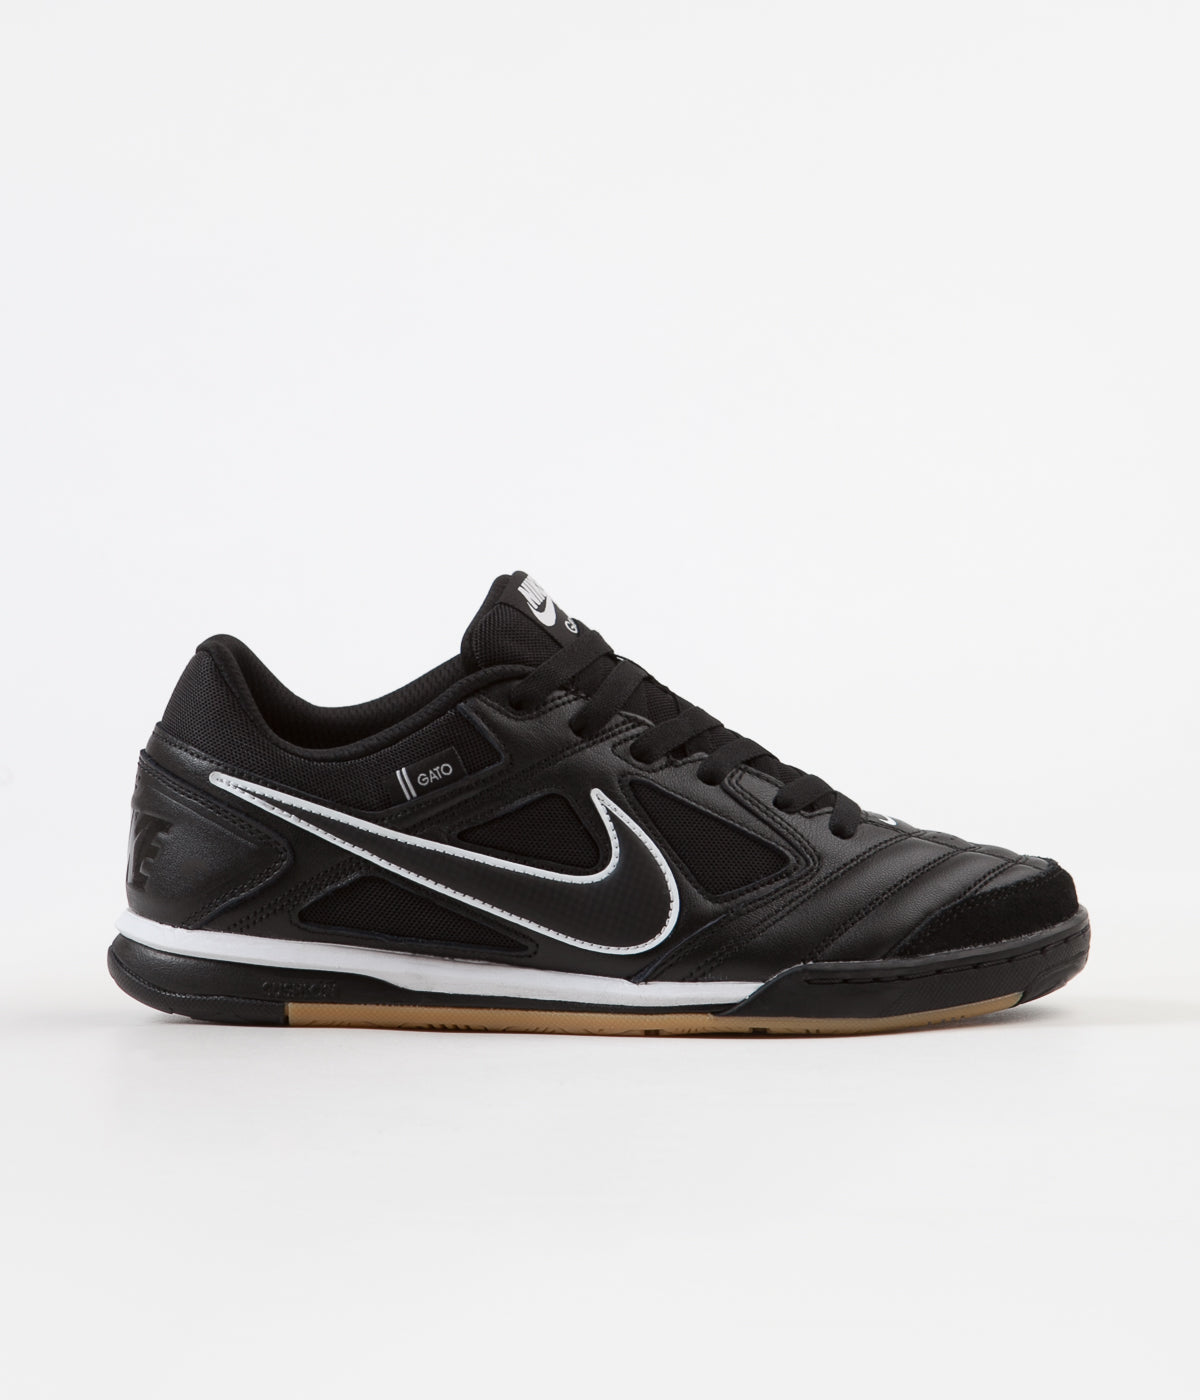 size 40 4e8f6 e5de0 Nike SB Gato Shoes - Black   Black - White - Gum Light Brown